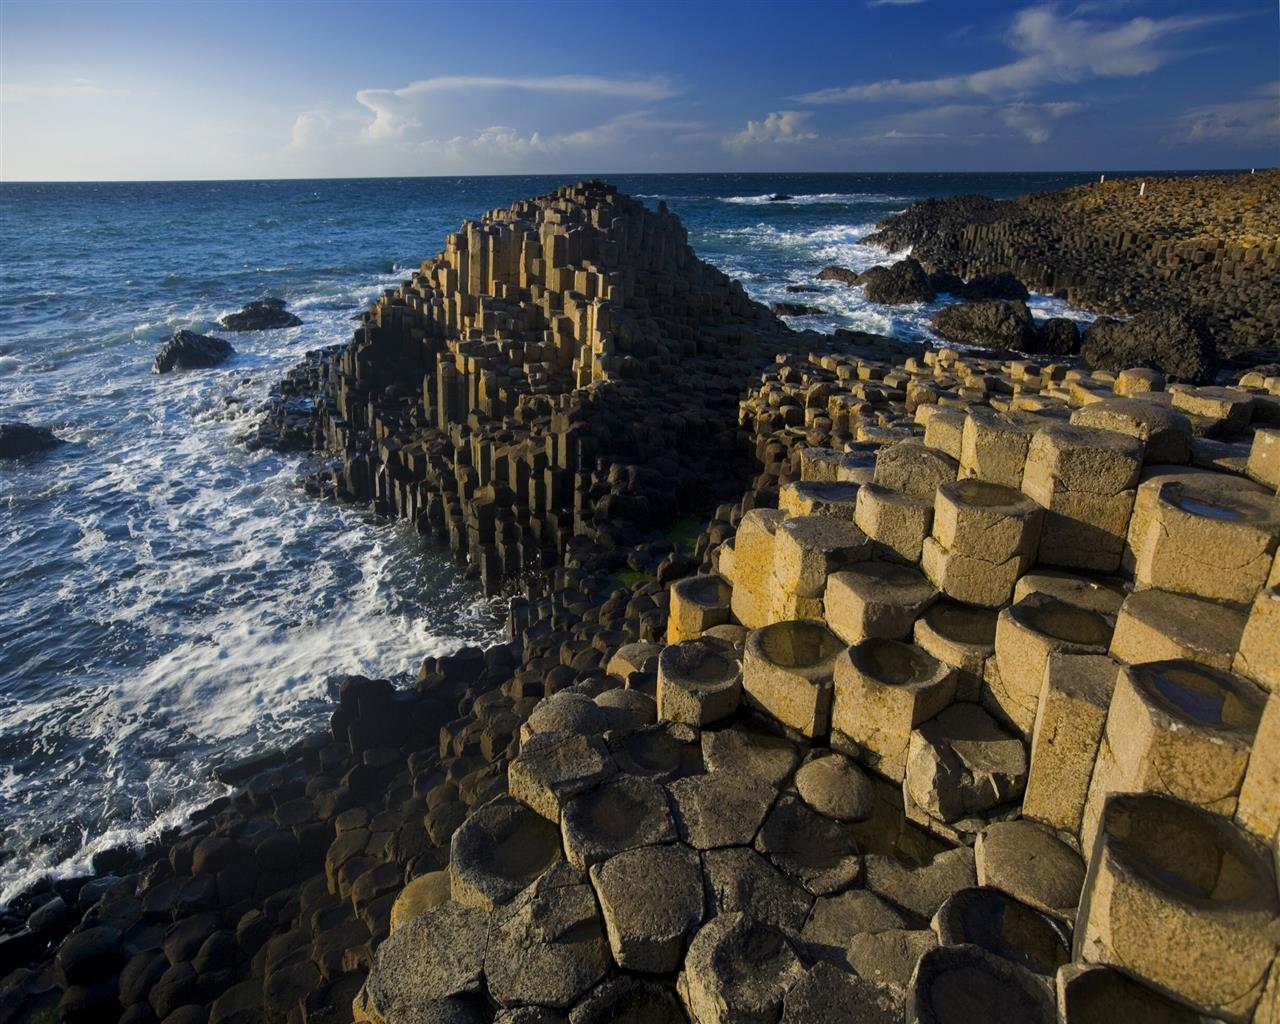 1280x1024 Giants Causeway in UK HD Photo